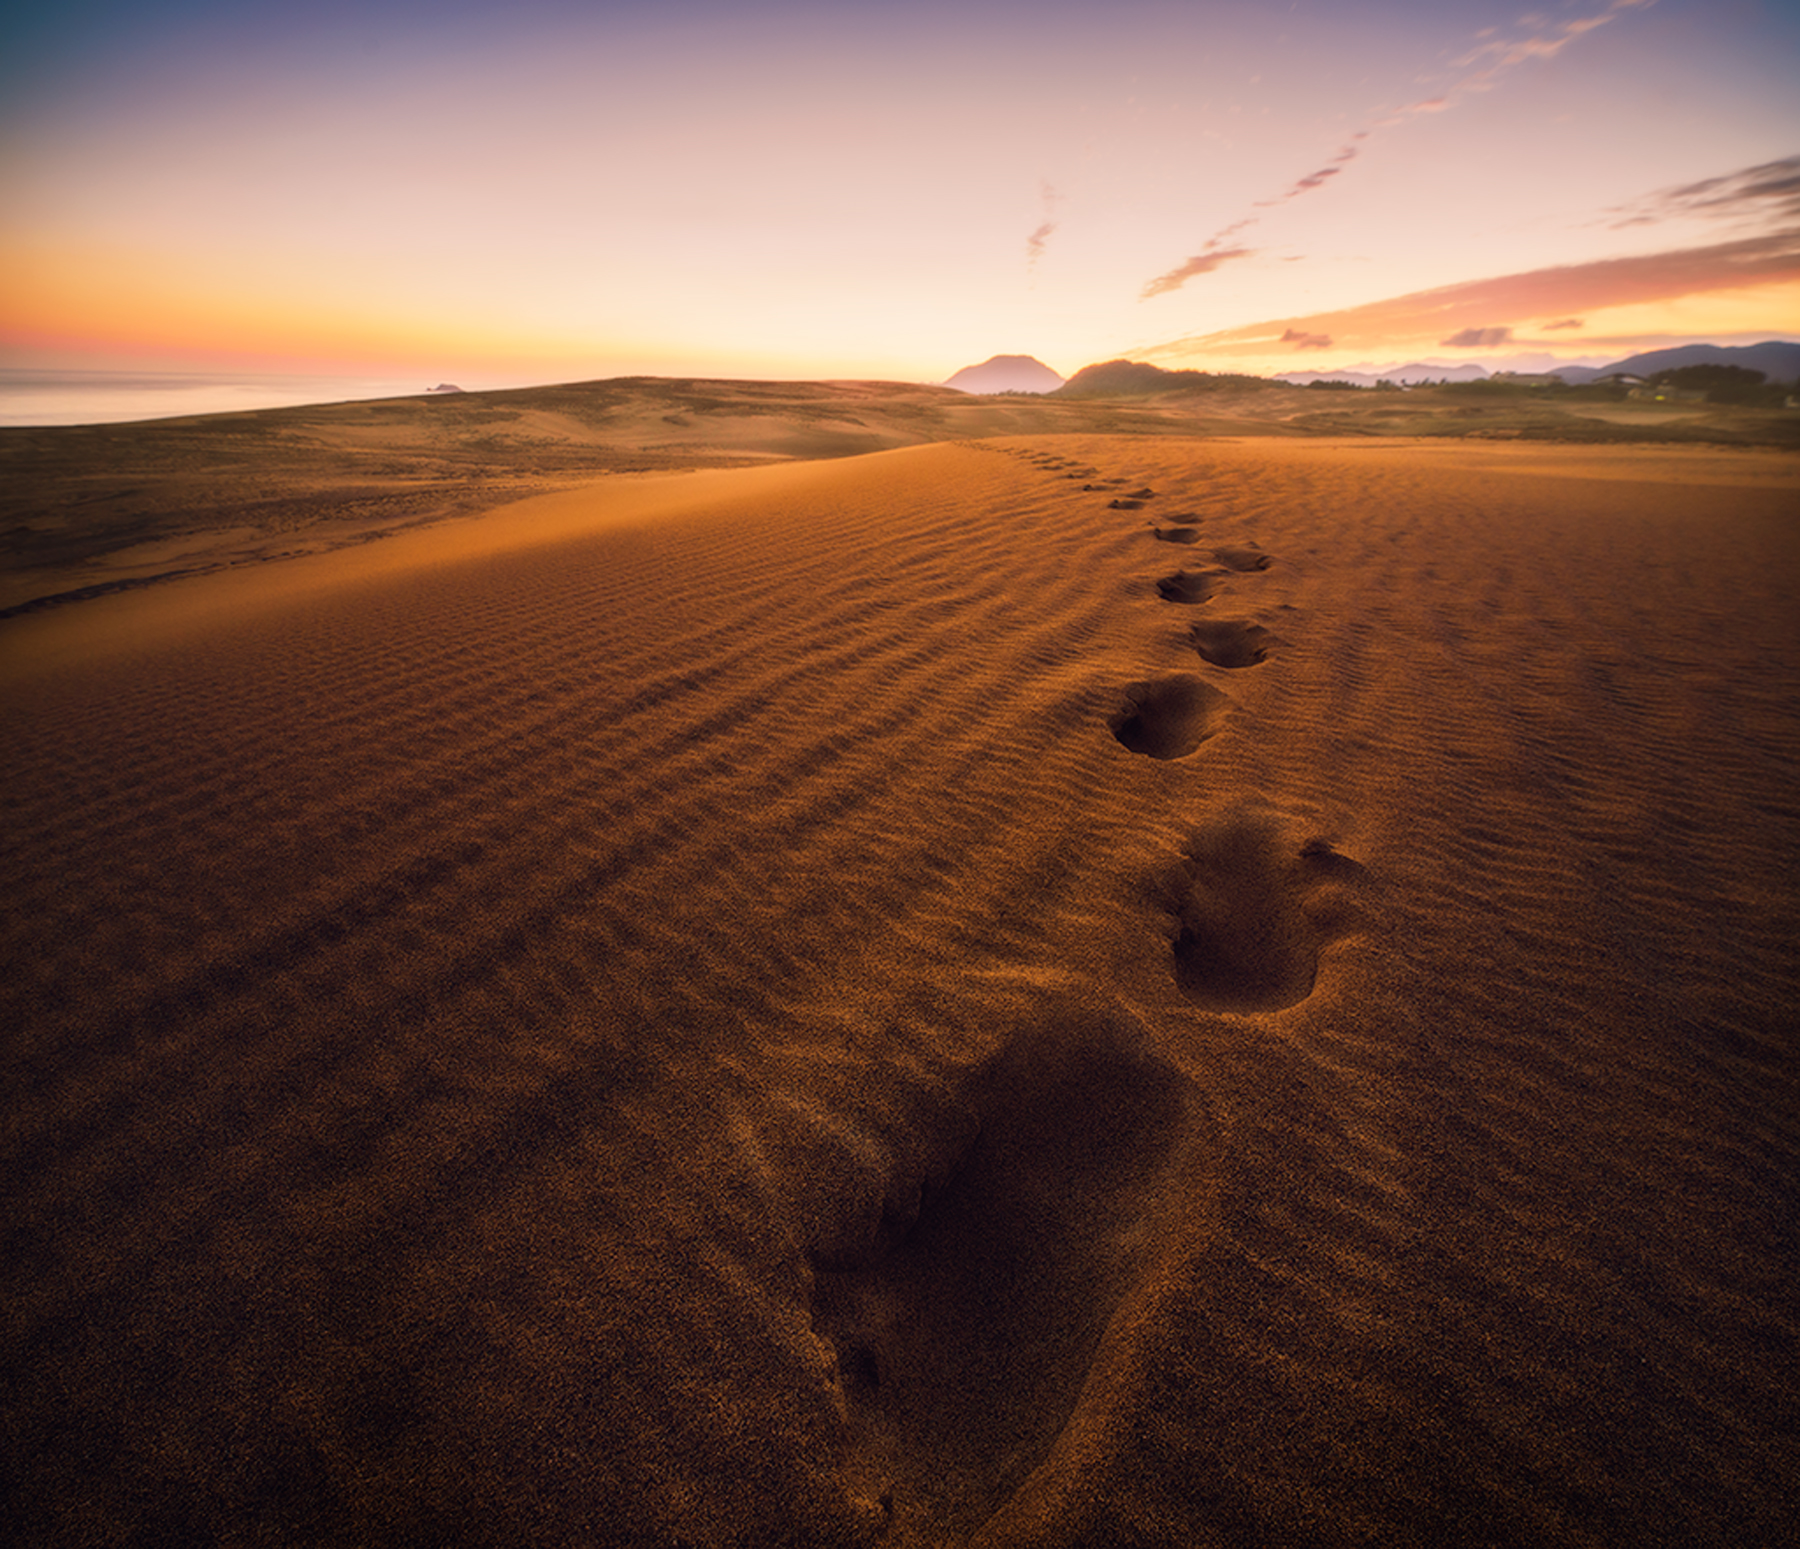 Footprints of Travelers